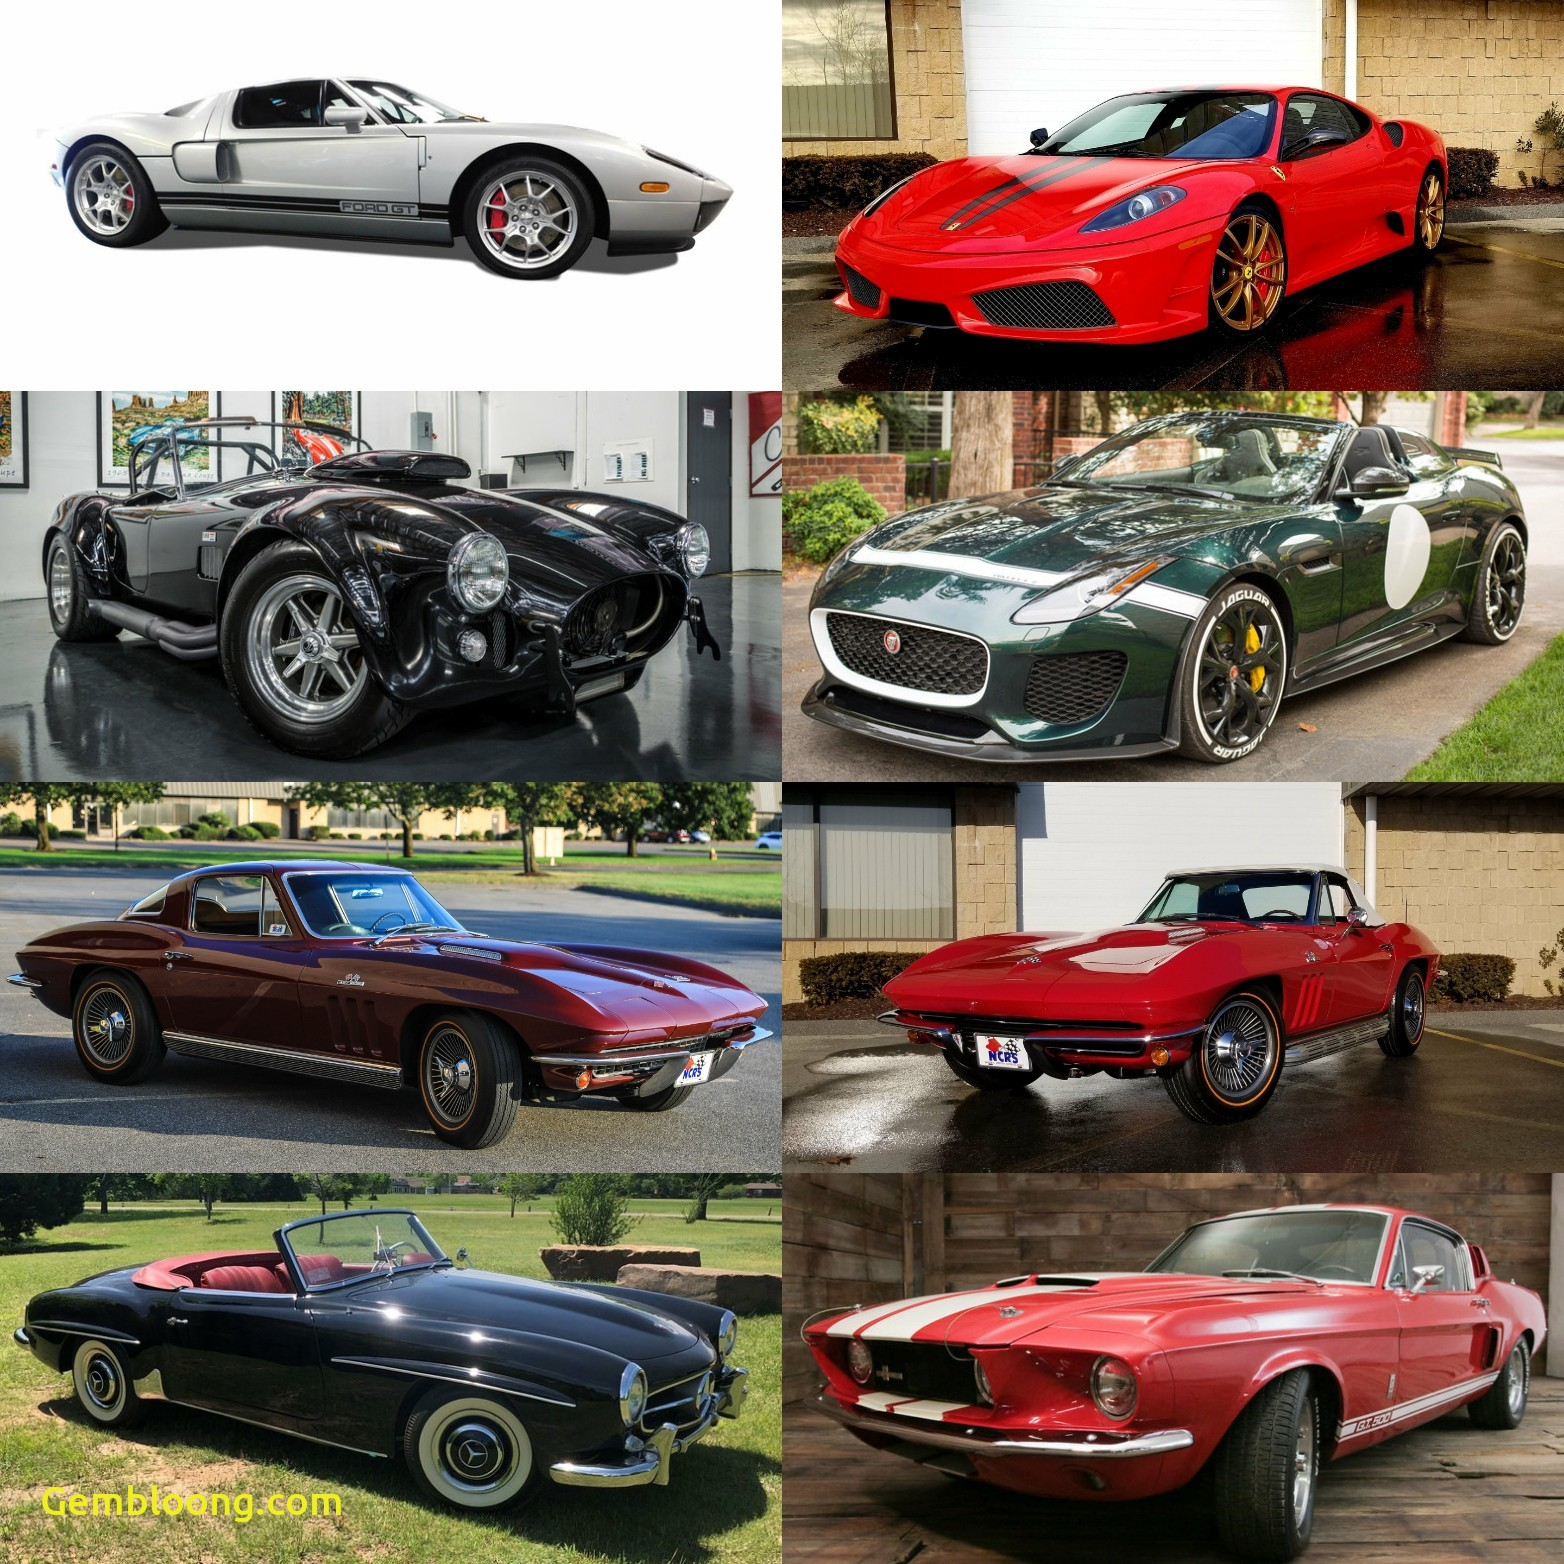 Muscle Cars for Sale Fresh From Investment Grade Supercars to Highly Desirable Muscle